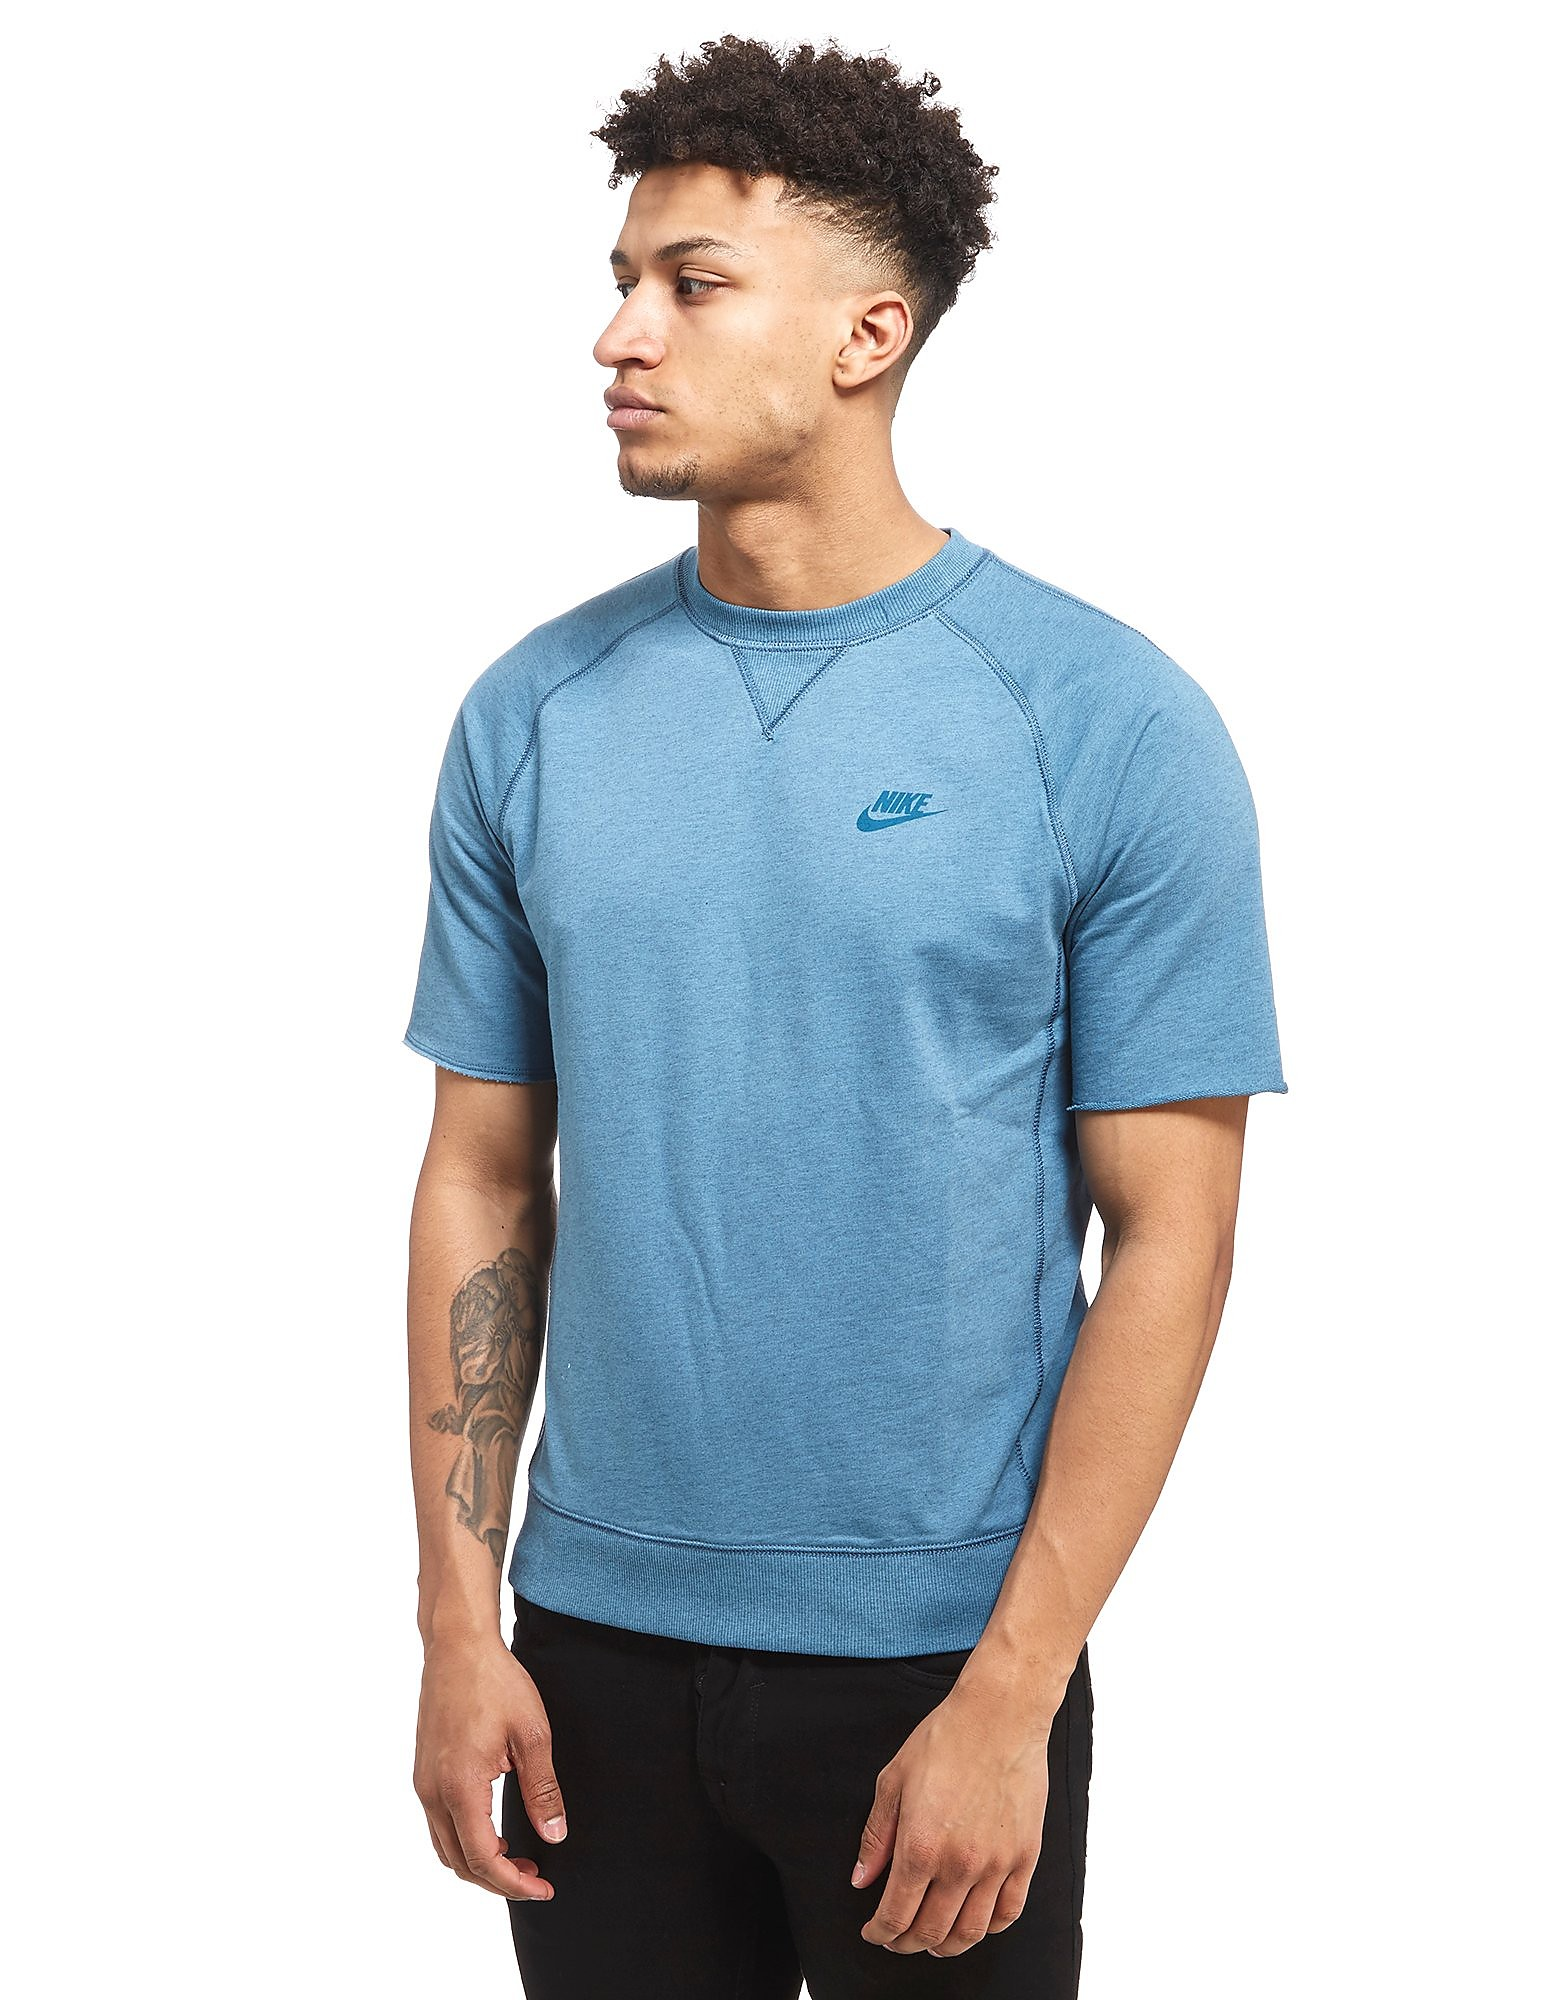 Nike Ultra Wash Crew Sweatshirt